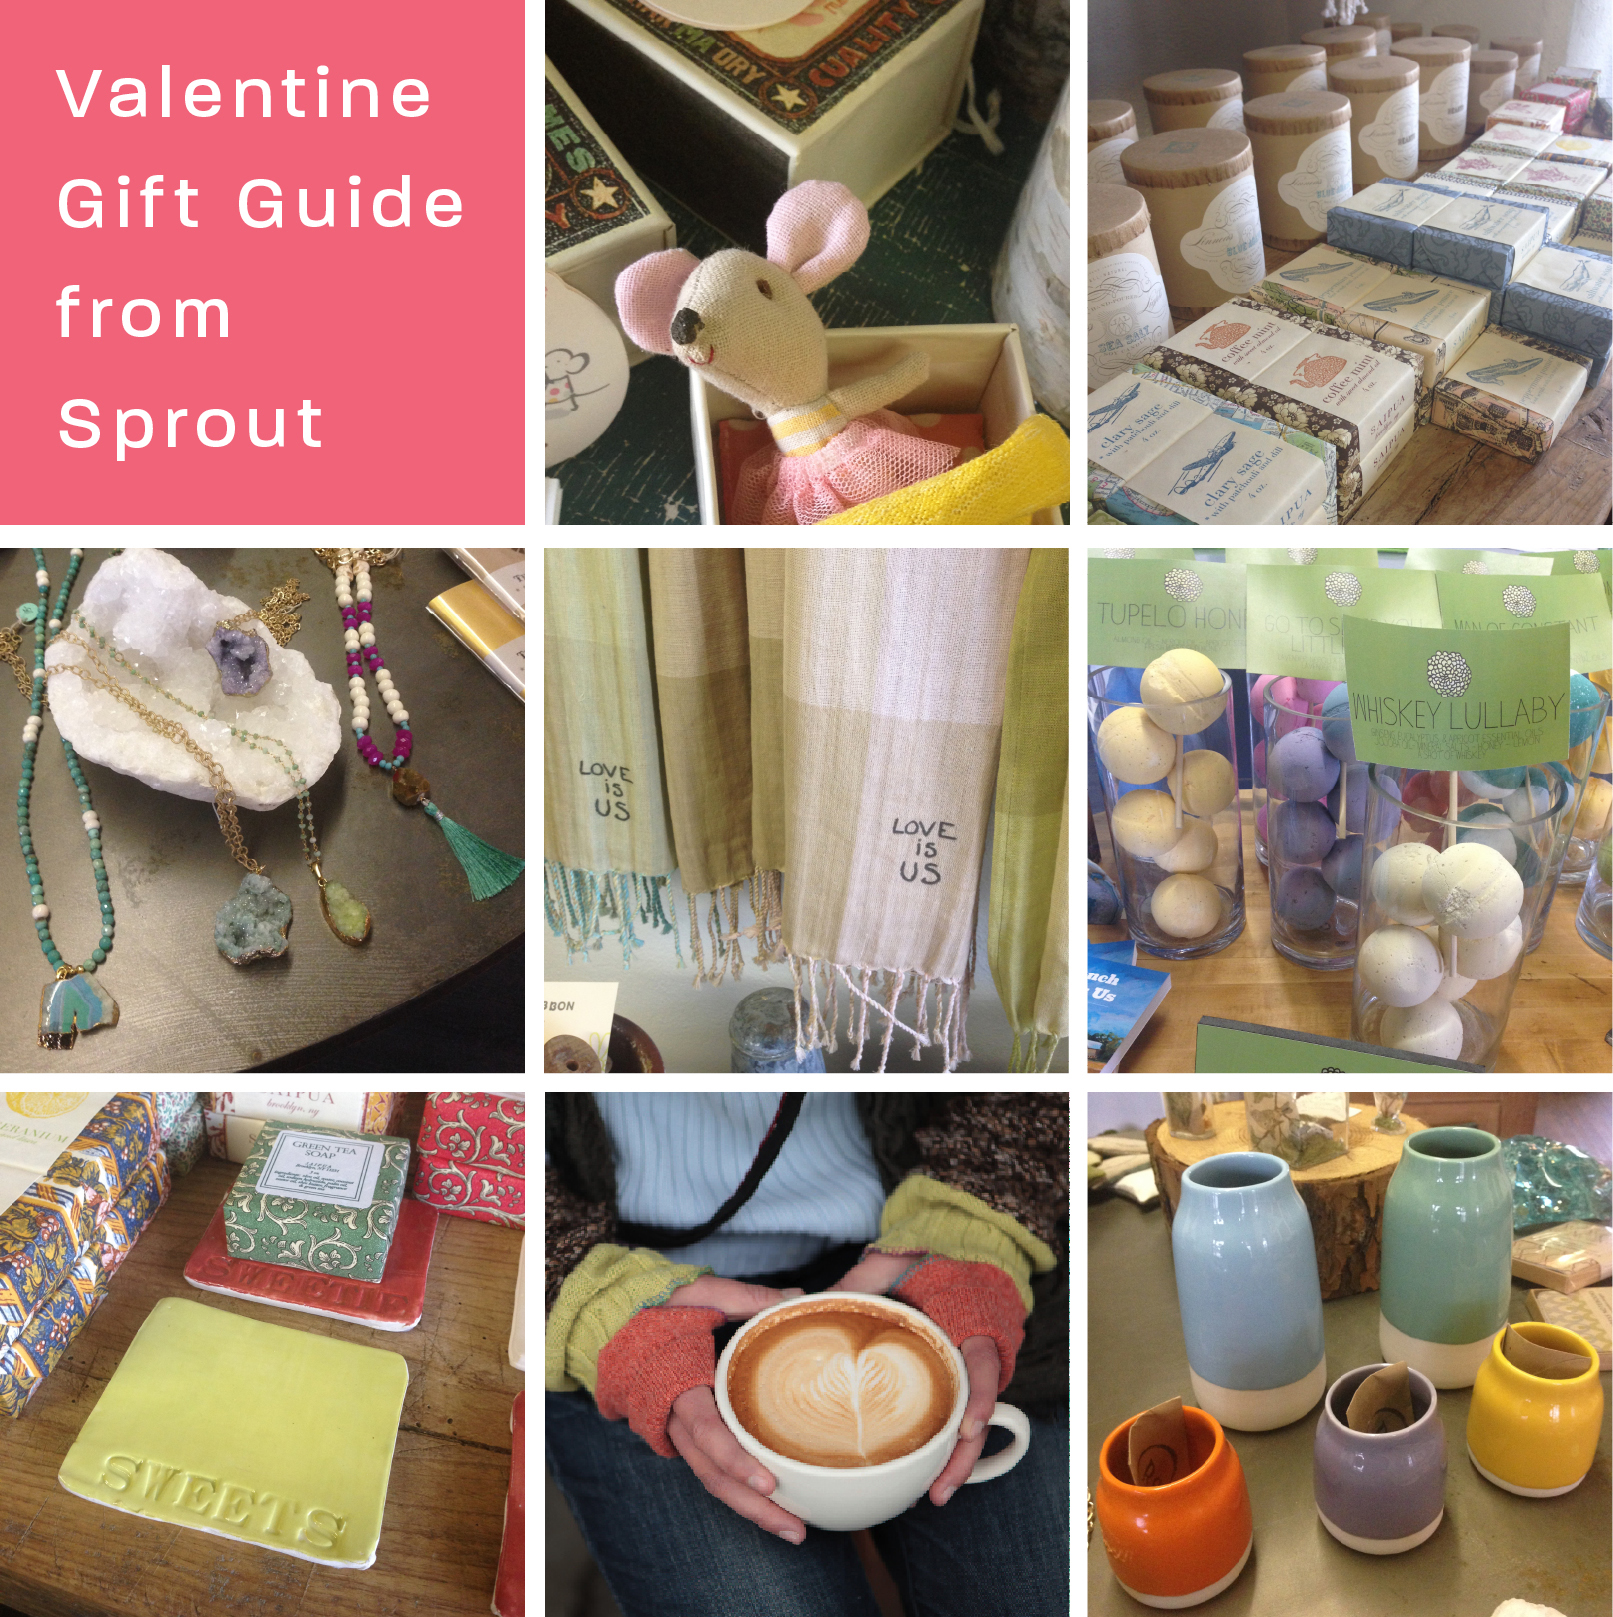 tiny mice by  Maileg  for the littlest Valentine, soaps by  Saipua  and candles by  Linnea's Lights , druzy jewelry by  Gresham ,  French Graffiti  scarves, bath bombs by  Musee , handmade ceramics by  Rhoda , fingerless mitts by  mitta , colorful ceramic vases by  Robert Siegel